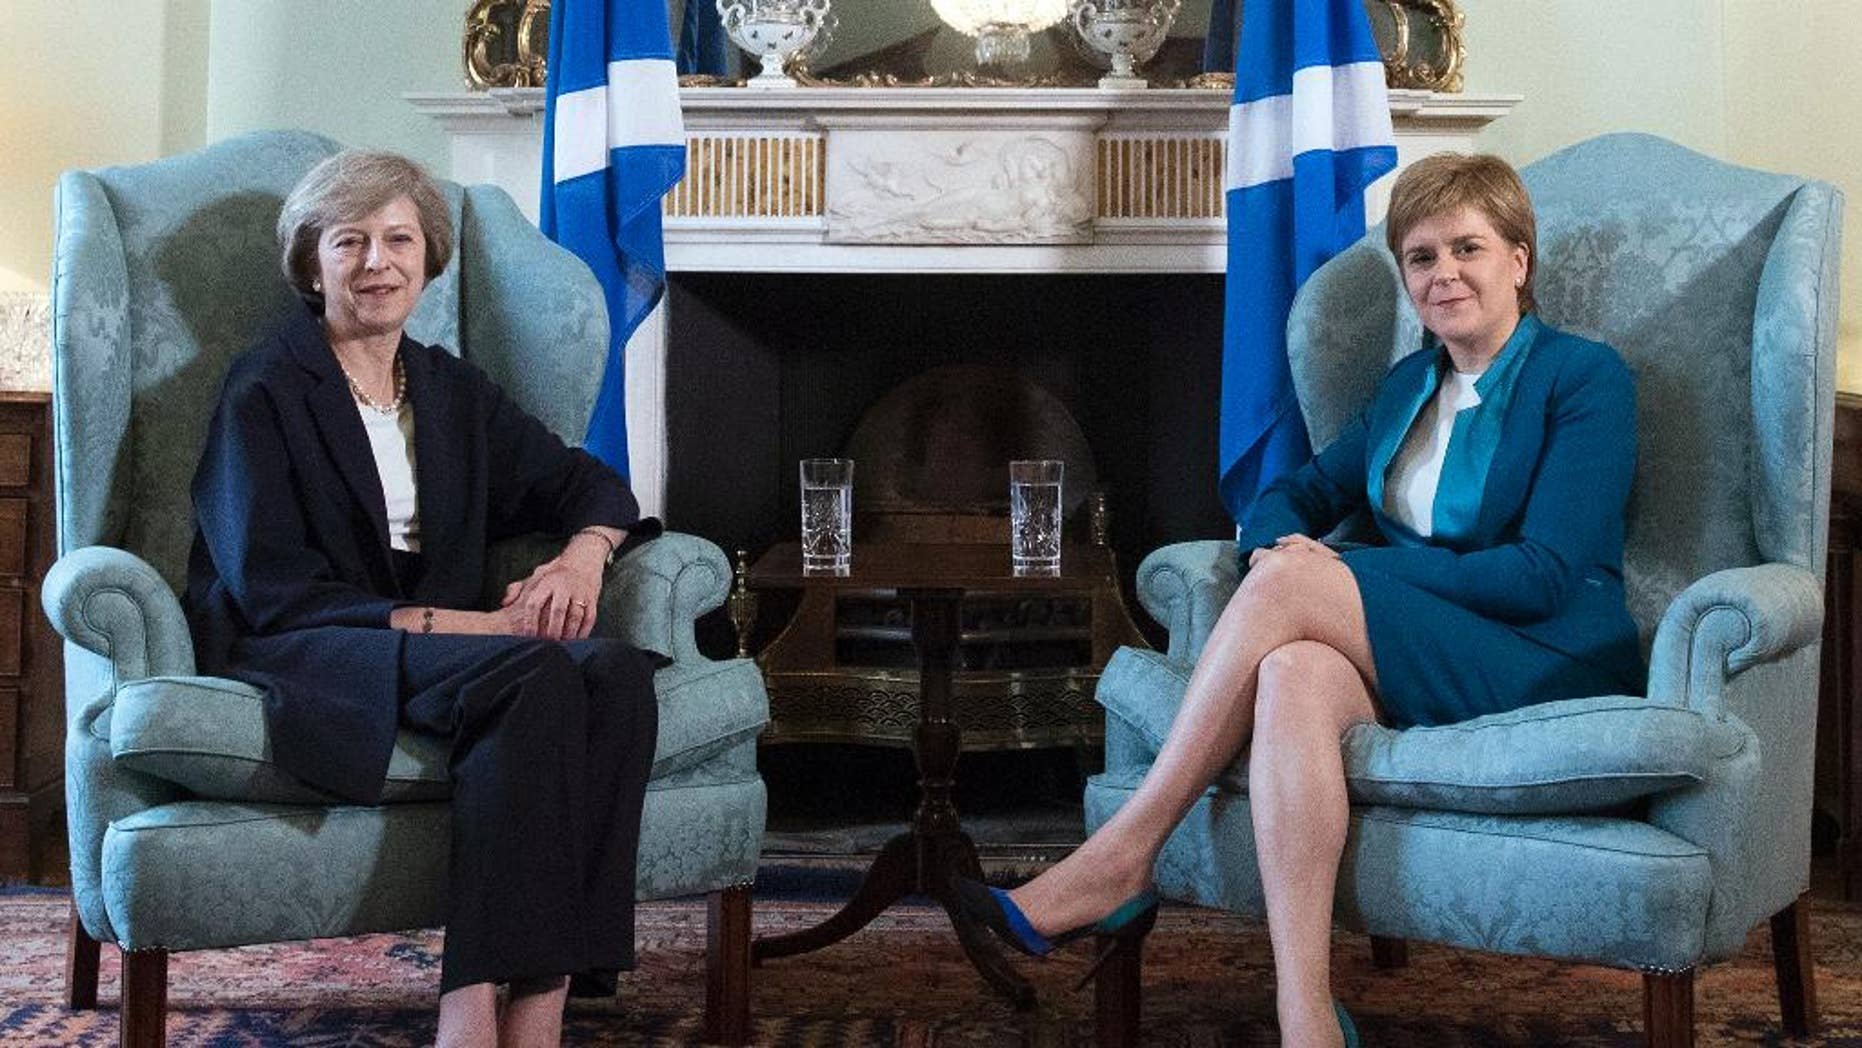 """Britain's new Prime Minister Theresa May, left, meets with First Minister of Scotland, Nicola Sturgeon at Bute House in Edinburgh, Scotland, Friday July 15, 2016, with Scottish saltire flags behind.  Prior to the meeting, May said """"This visit to Scotland is my first as prime minister and I'm coming here to show my commitment to preserving this special union that has endured for centuries."""" (Pool via AP)"""